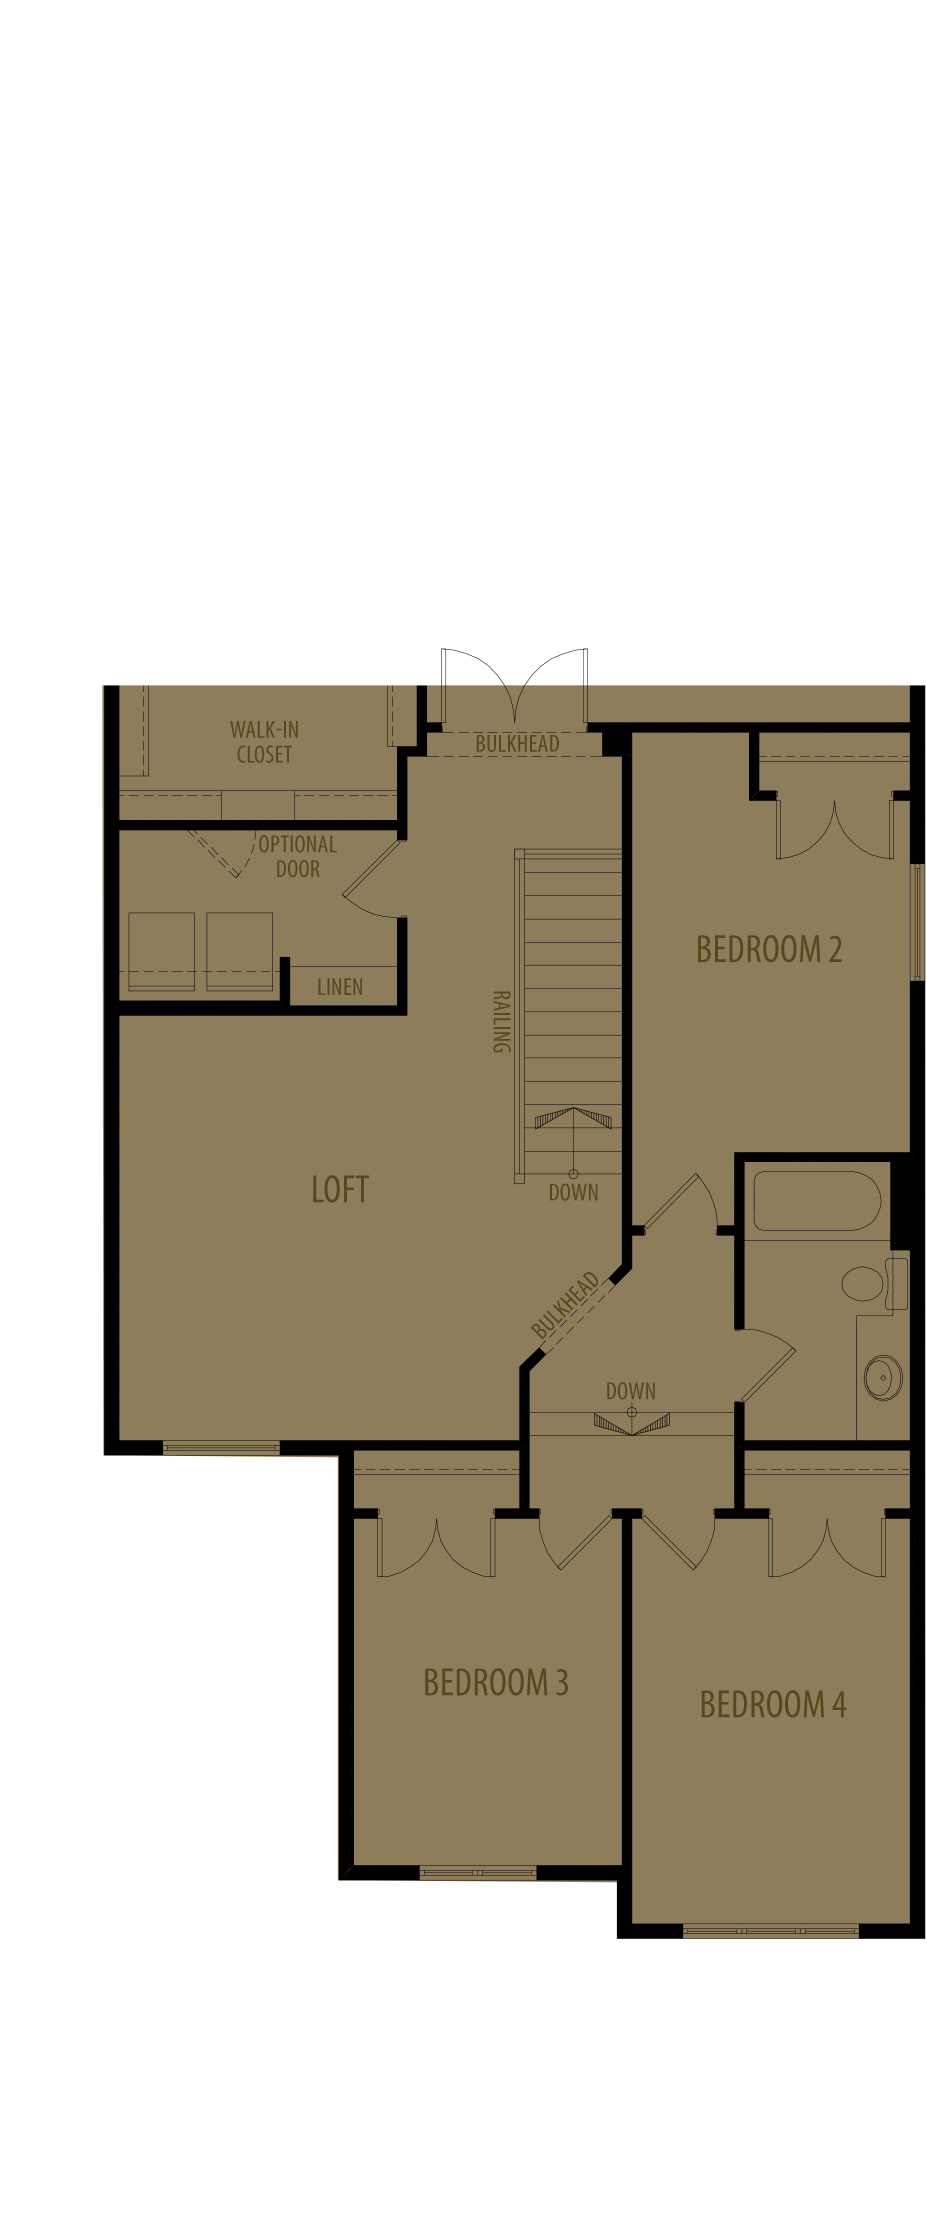 4Th Bedroom Loft